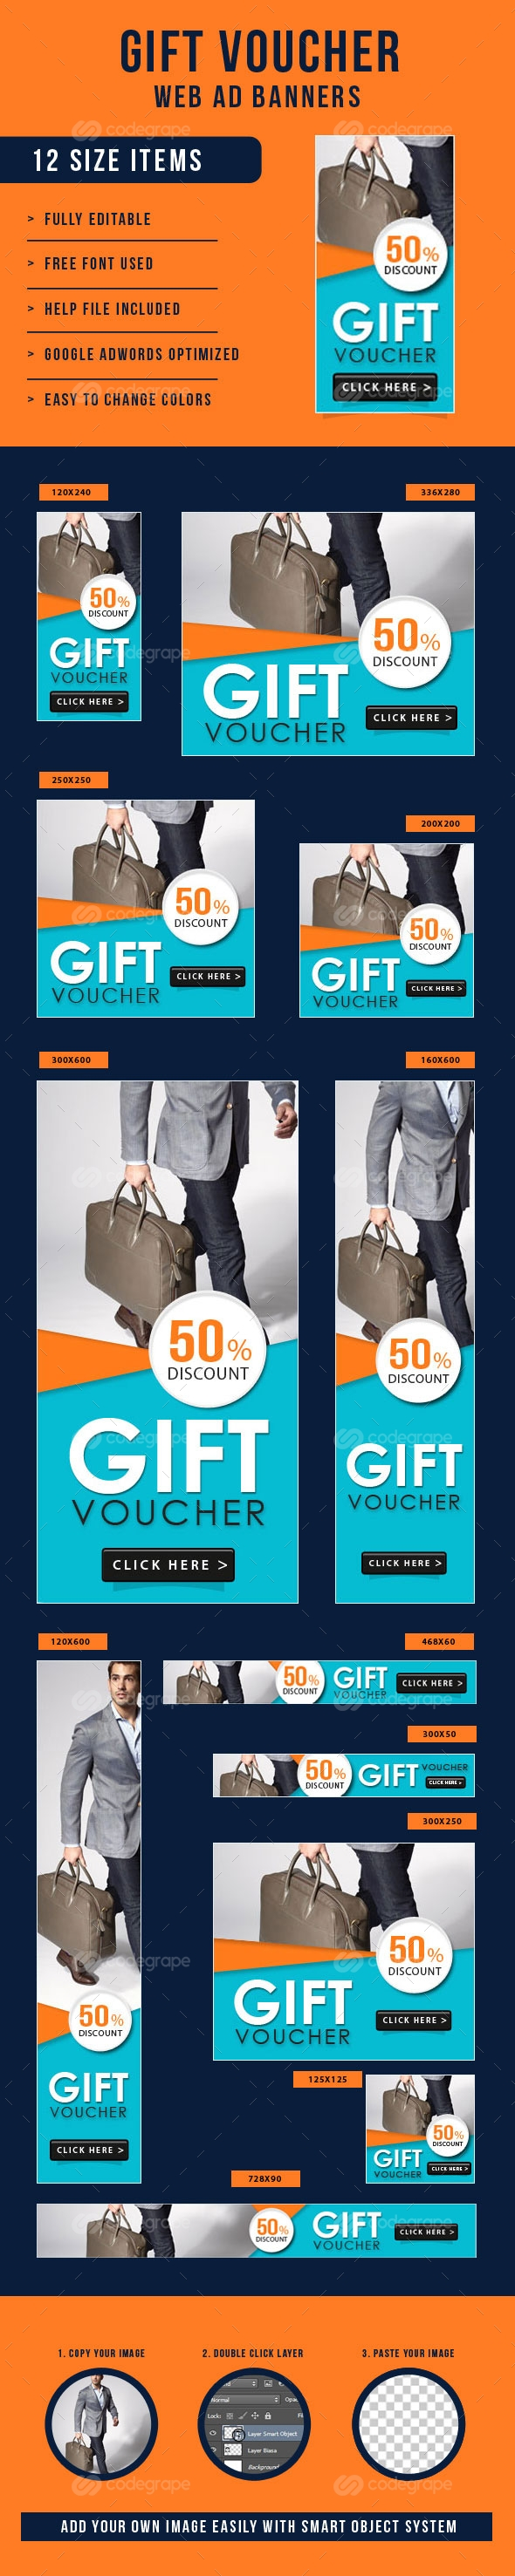 Gift Voucher Banners Ad